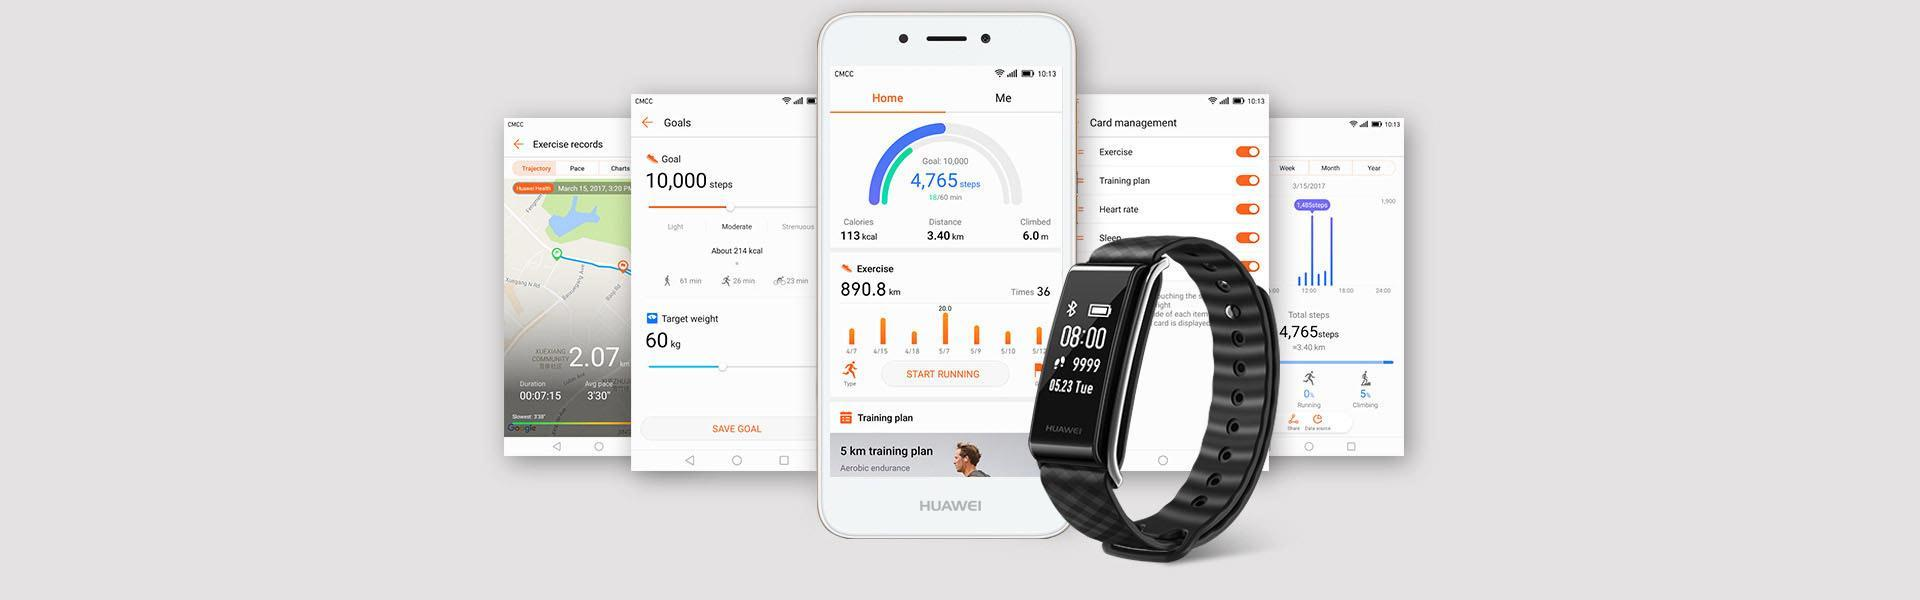 App Integration With Huawei Health